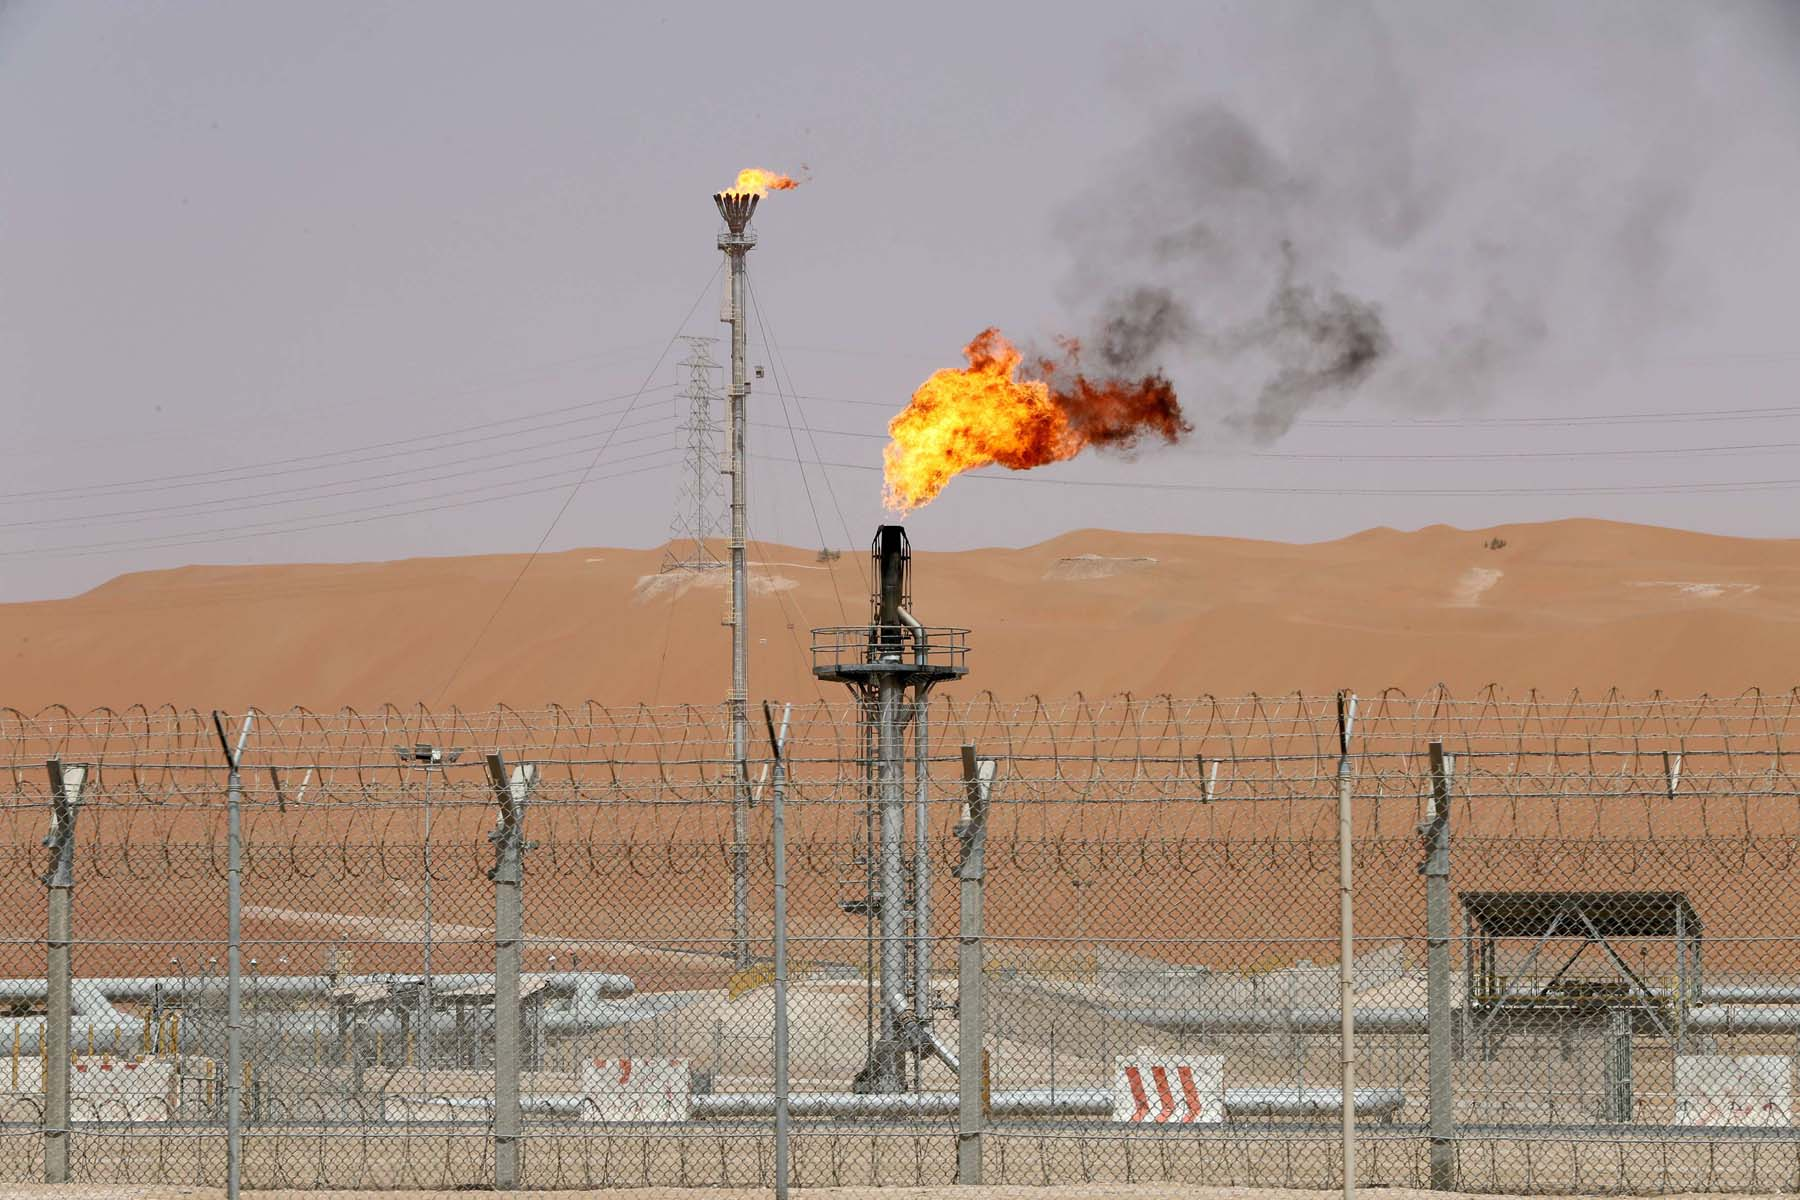 Flames at the production facility of Aramco's Shaybah oilfield in the Empty Quarter. (Reuters)